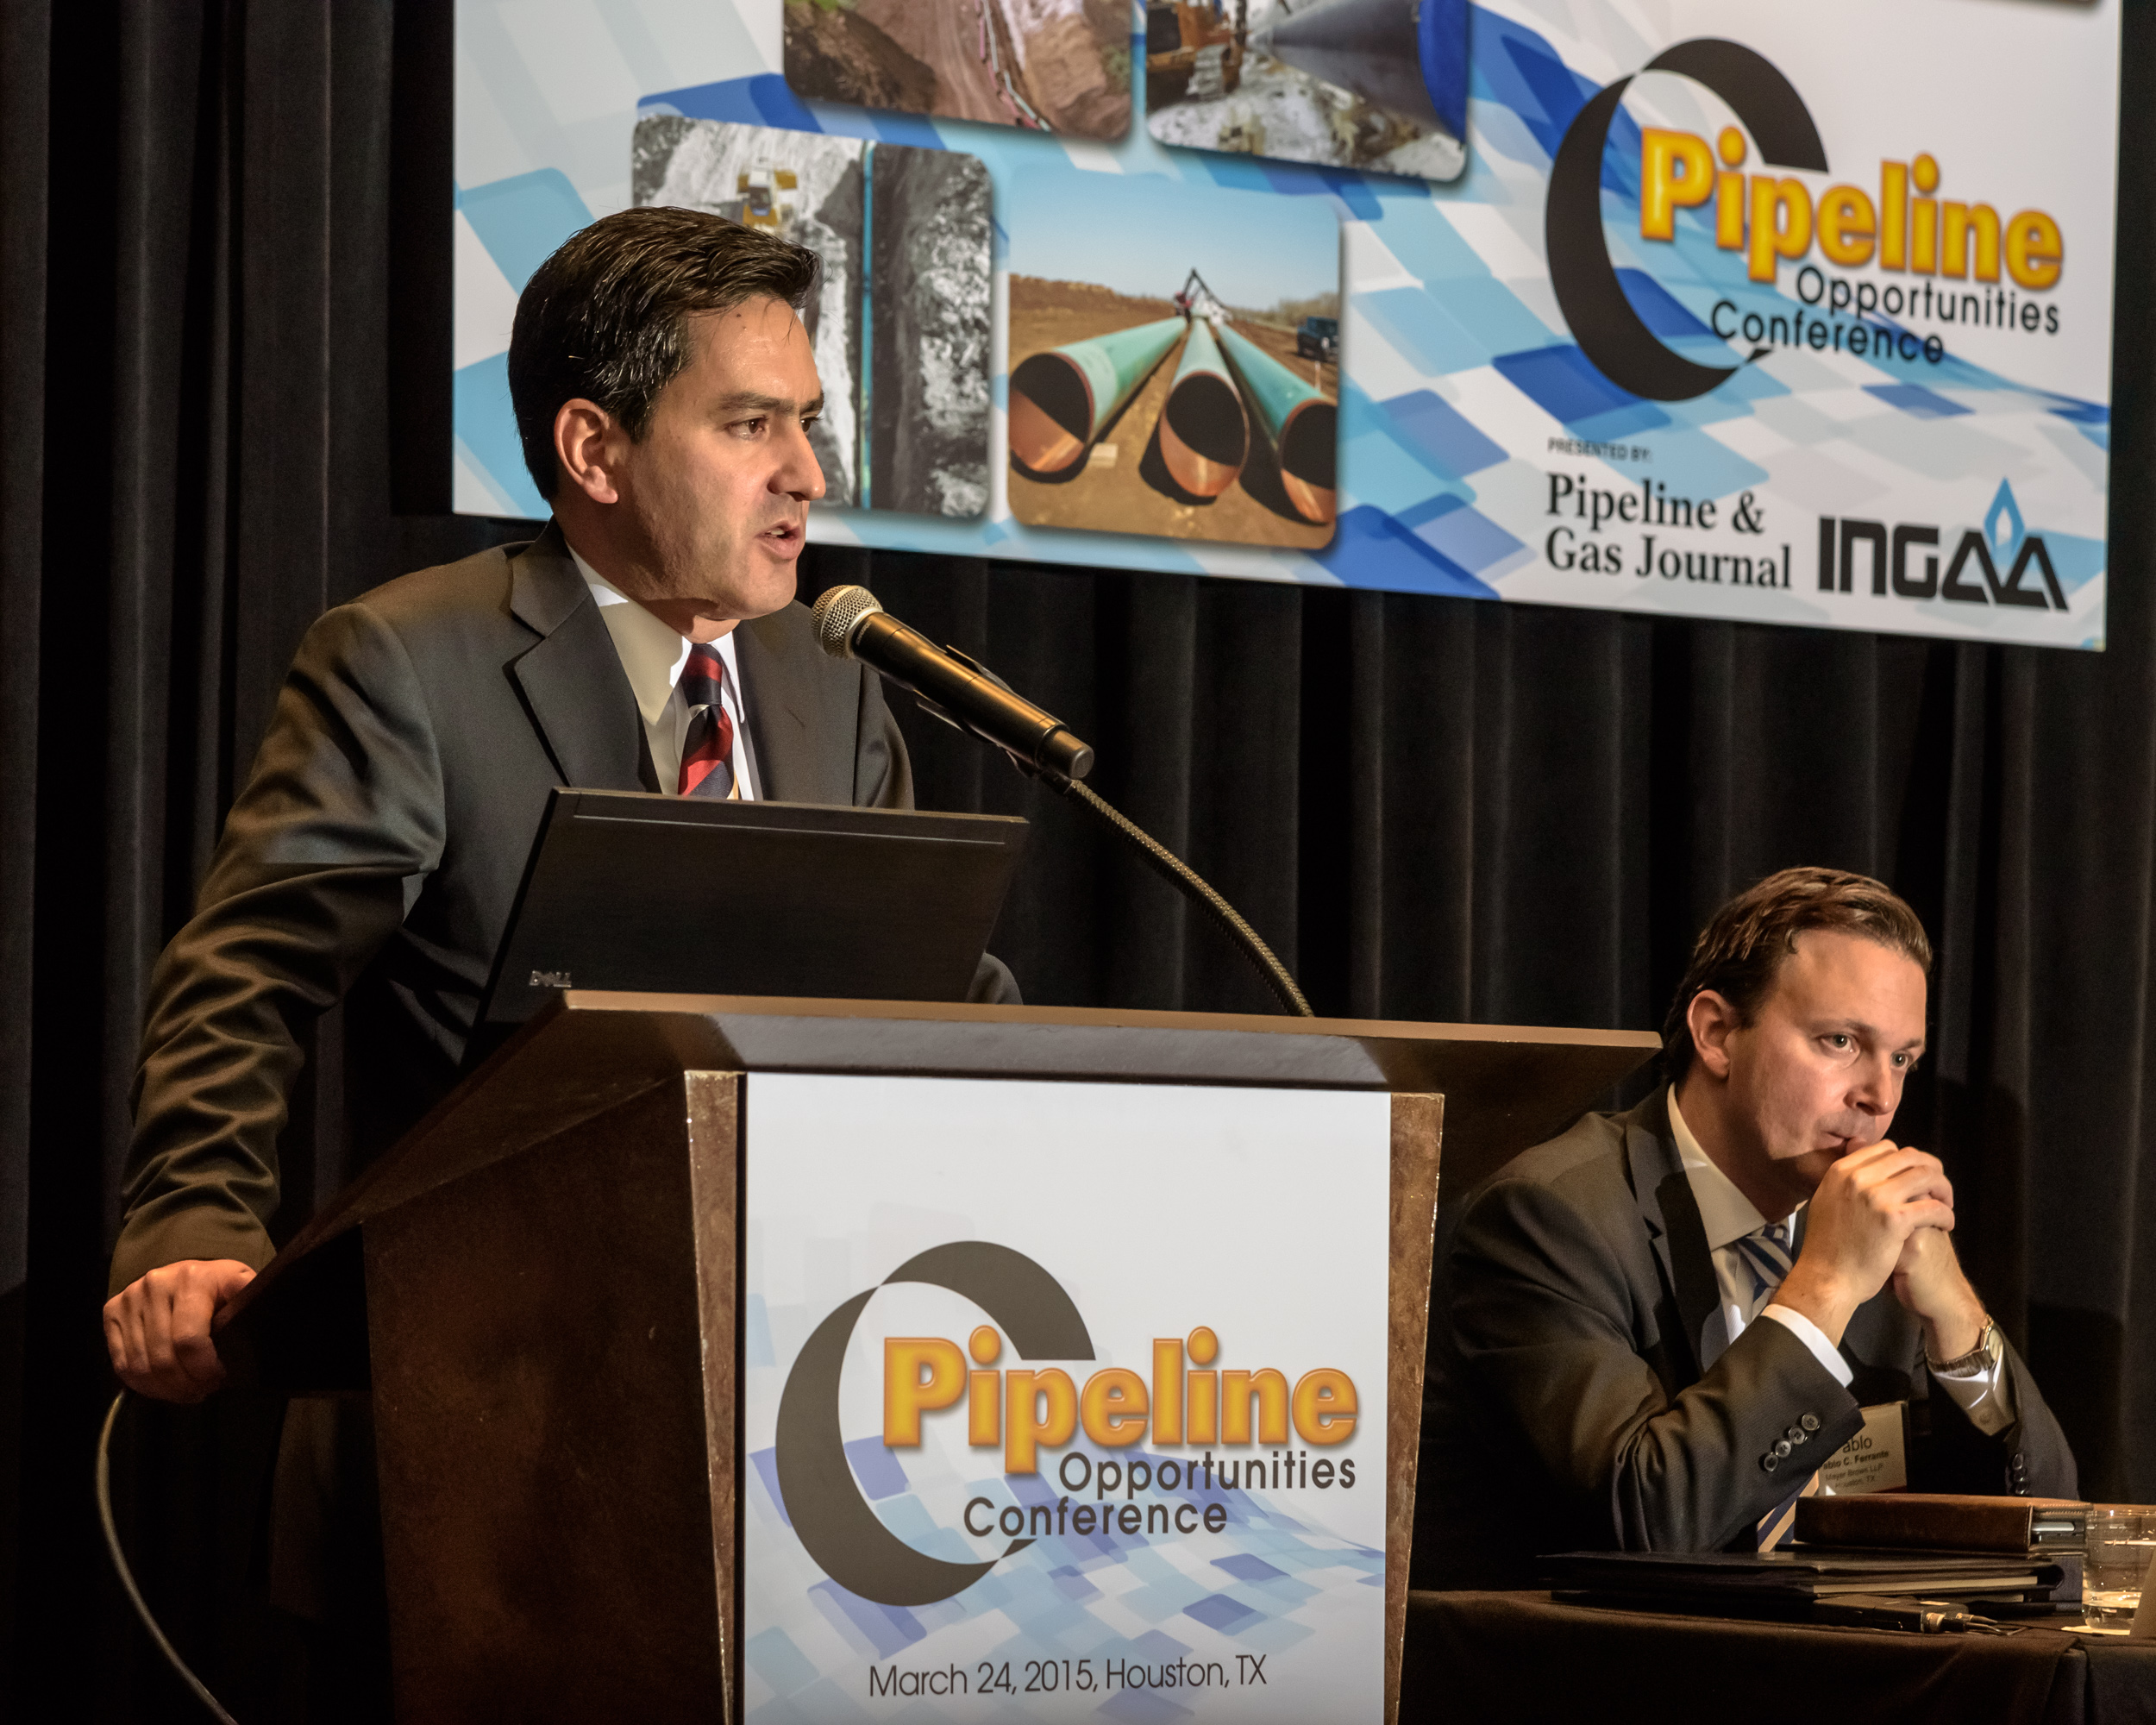 David Madero Suarez, director general of The National Center for Control of Natural Gas, explains Mexico's Energy Reform at Pipeline & Gas Journal's Pipeline Opportunities Conference on March 26.